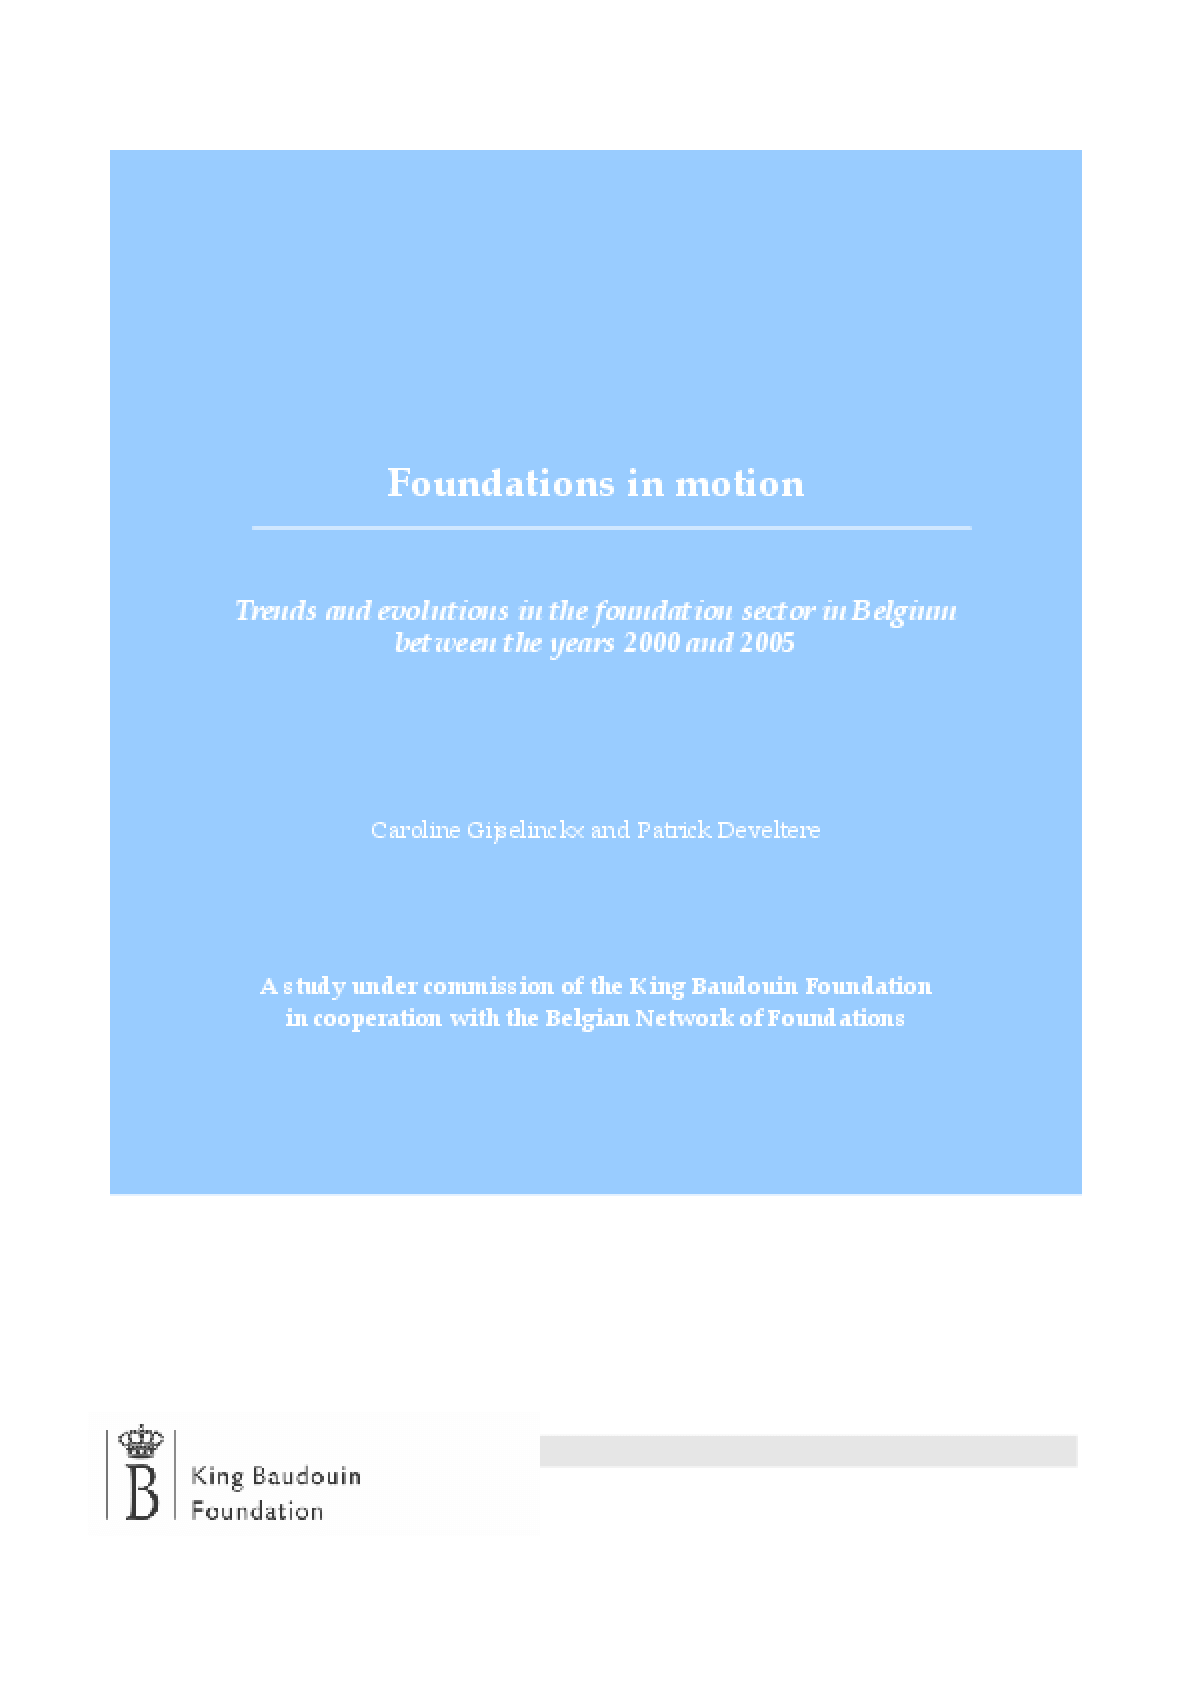 Foundations in Motion : Trends and Evolutions in the Foundation Sector in Belgium between the years 2000 and 2005